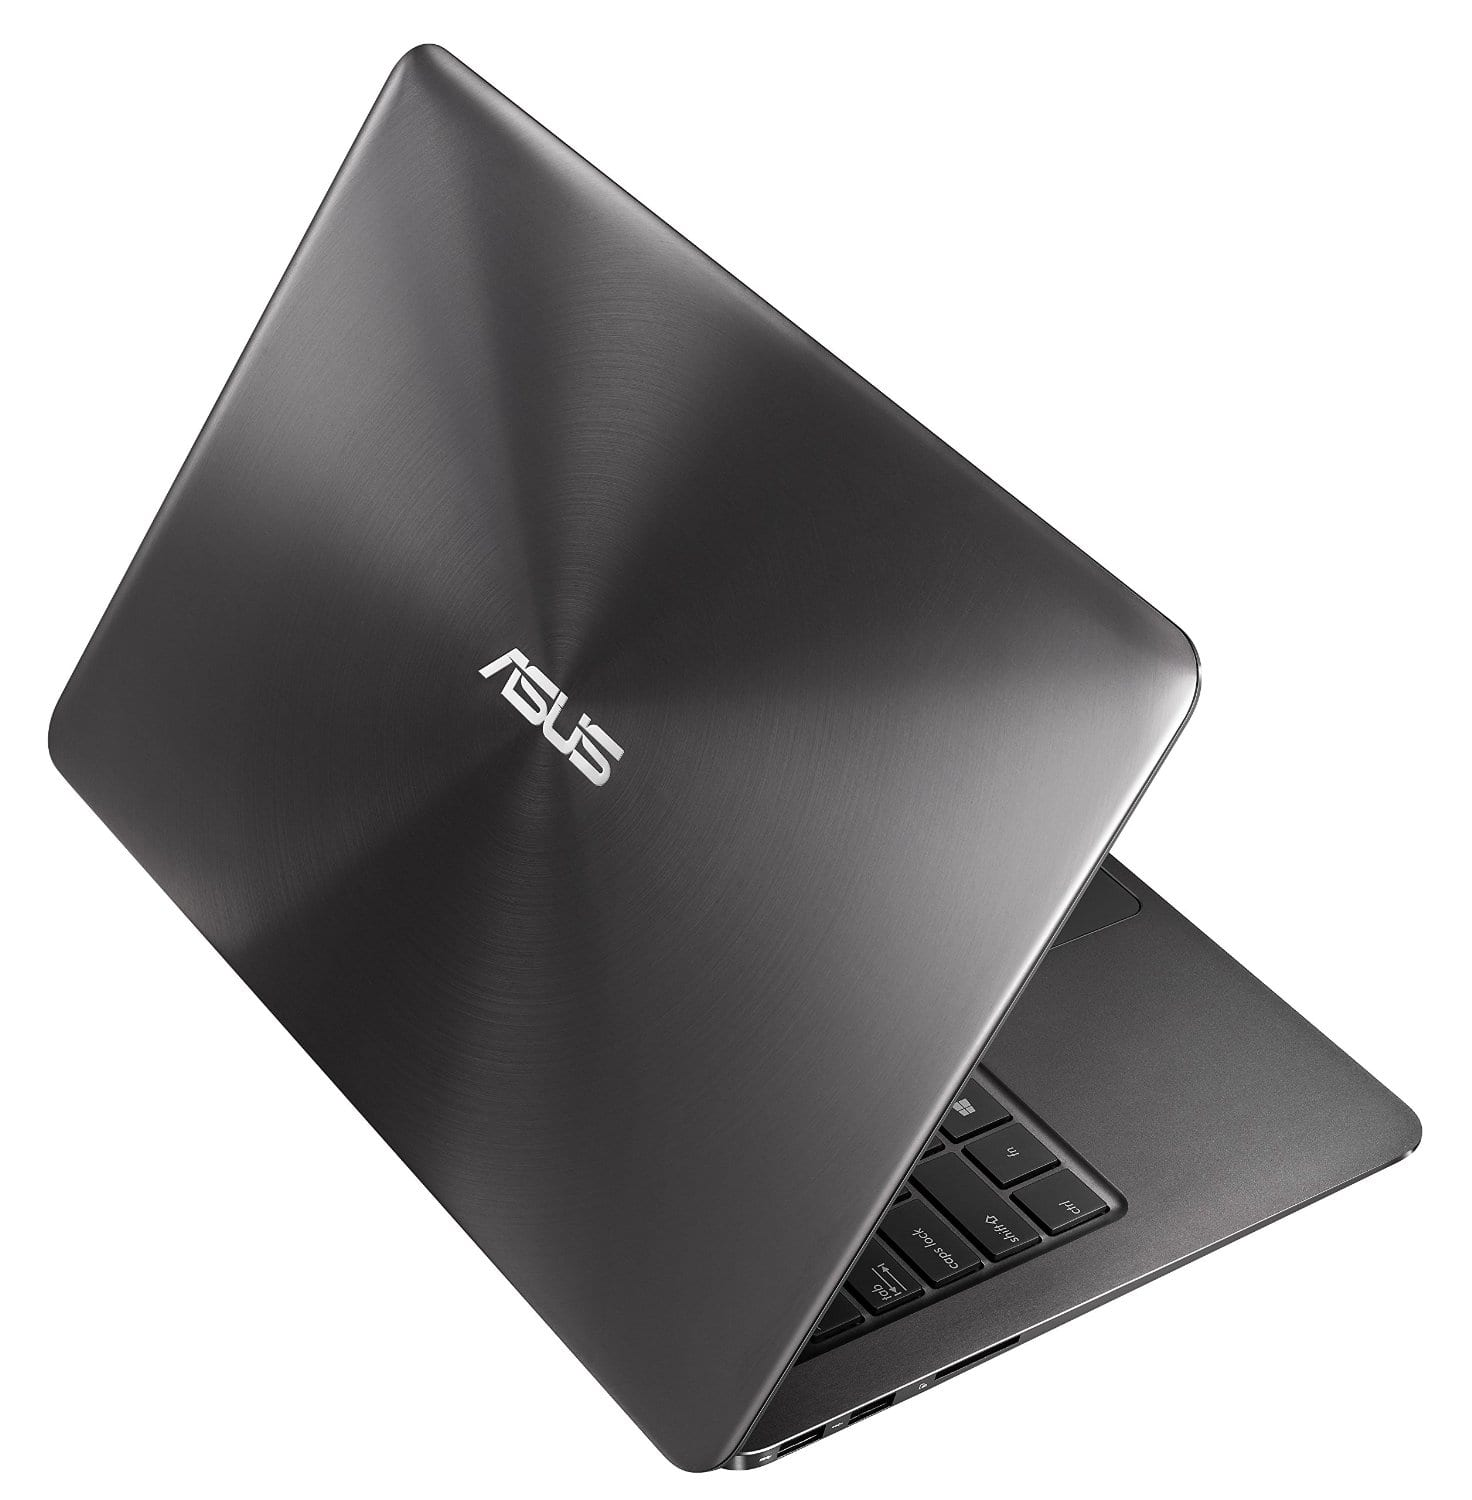 ASUS Zenbook UX305 13.3in/ 256 SSD/ 8 GB RAM (Amazon warehouse $363+tax) (Open Box/Used)